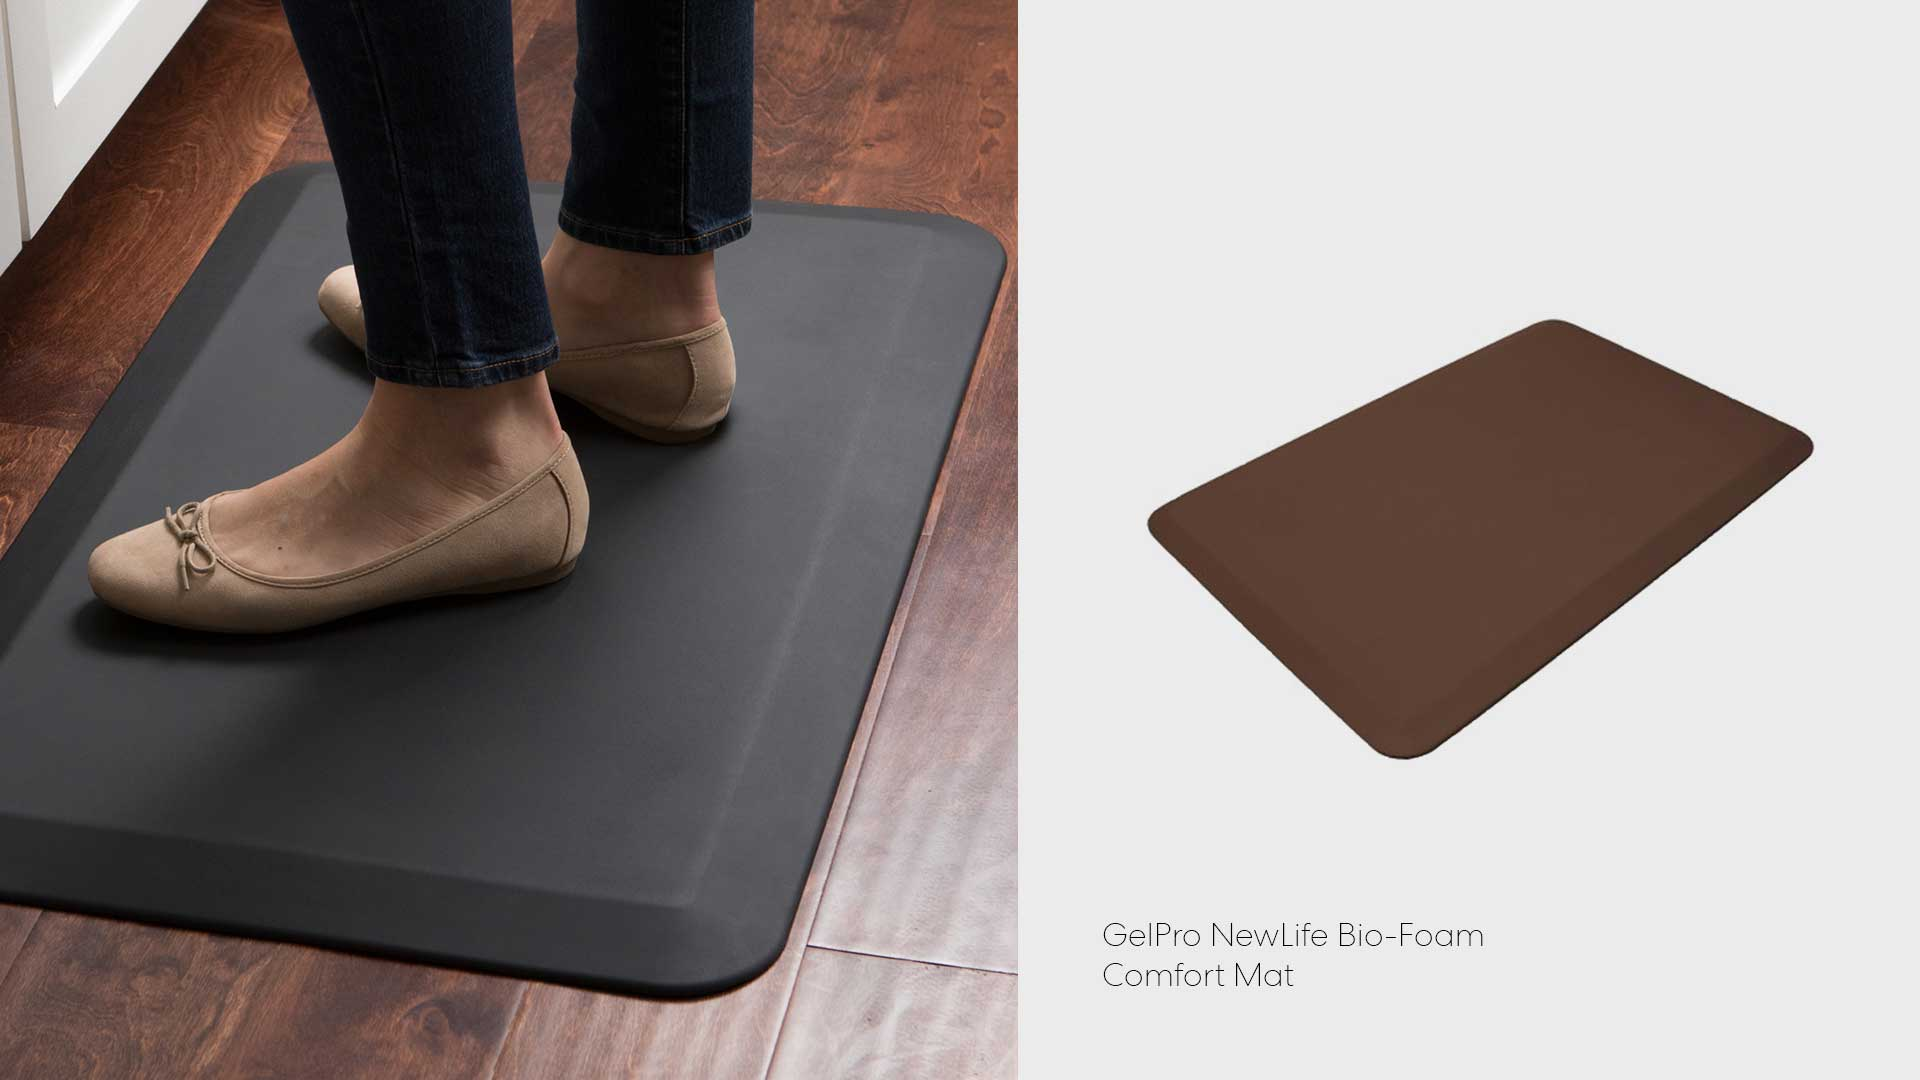 image relates to Comfort Mat